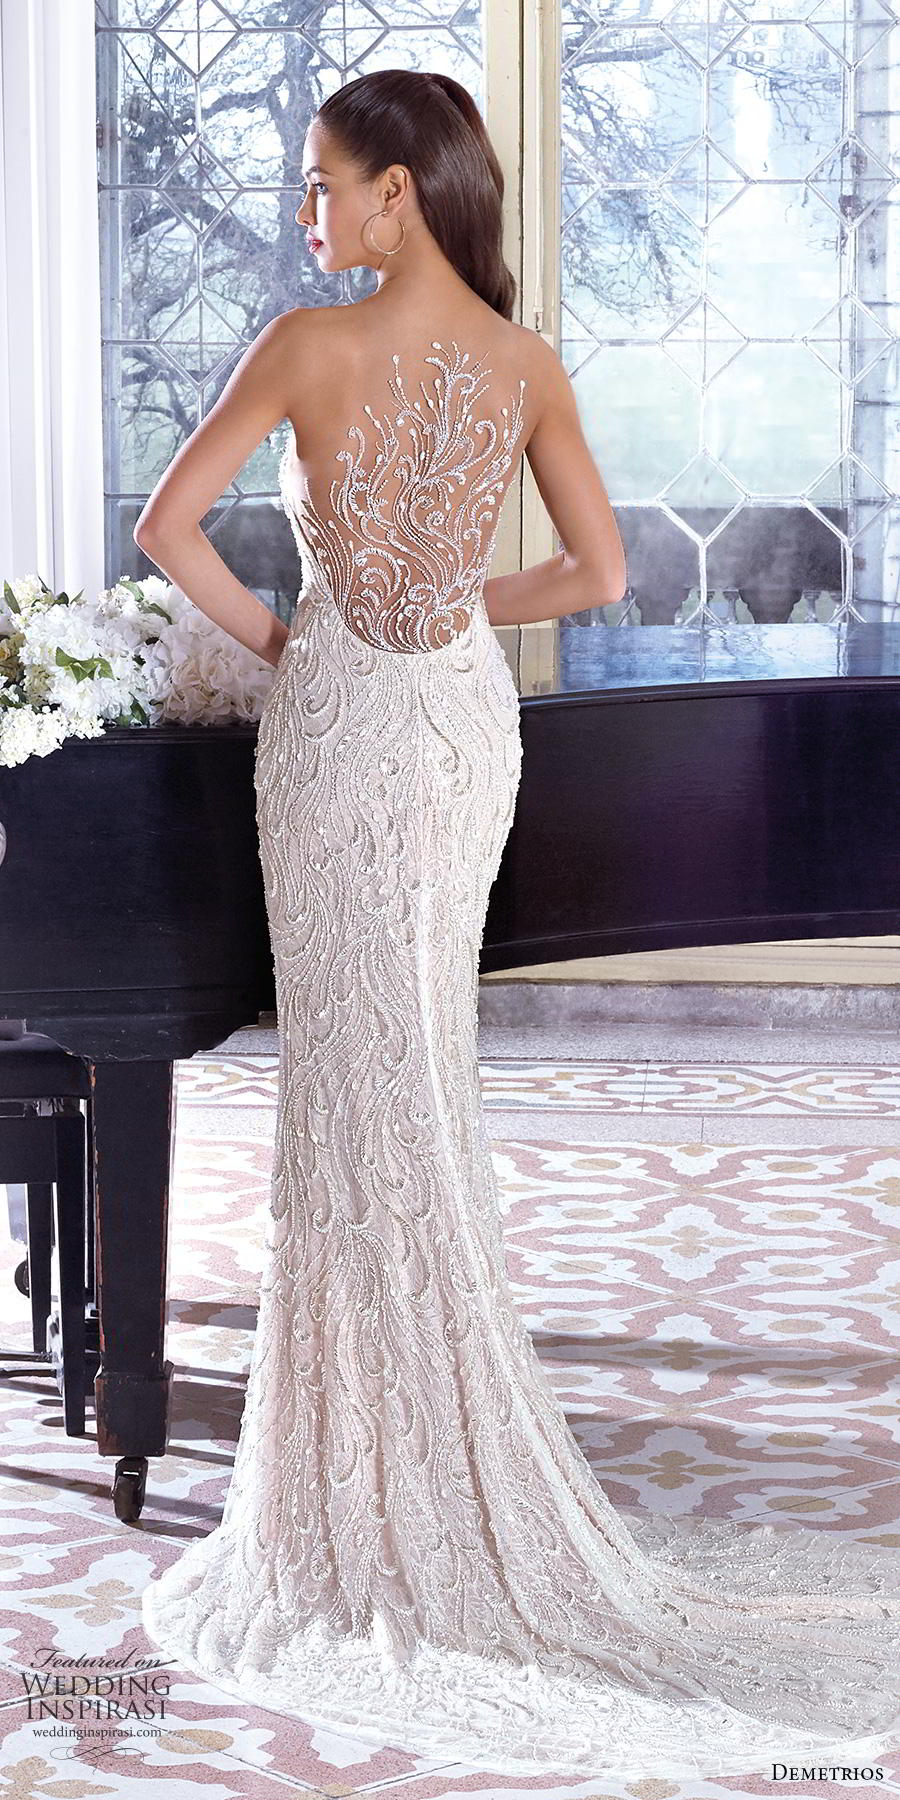 demetrios 2019 bridal strapless sweetheart neckline full embellishment elegant glamorous fit and flare sheath wedding dress embellished back short train (8) bv